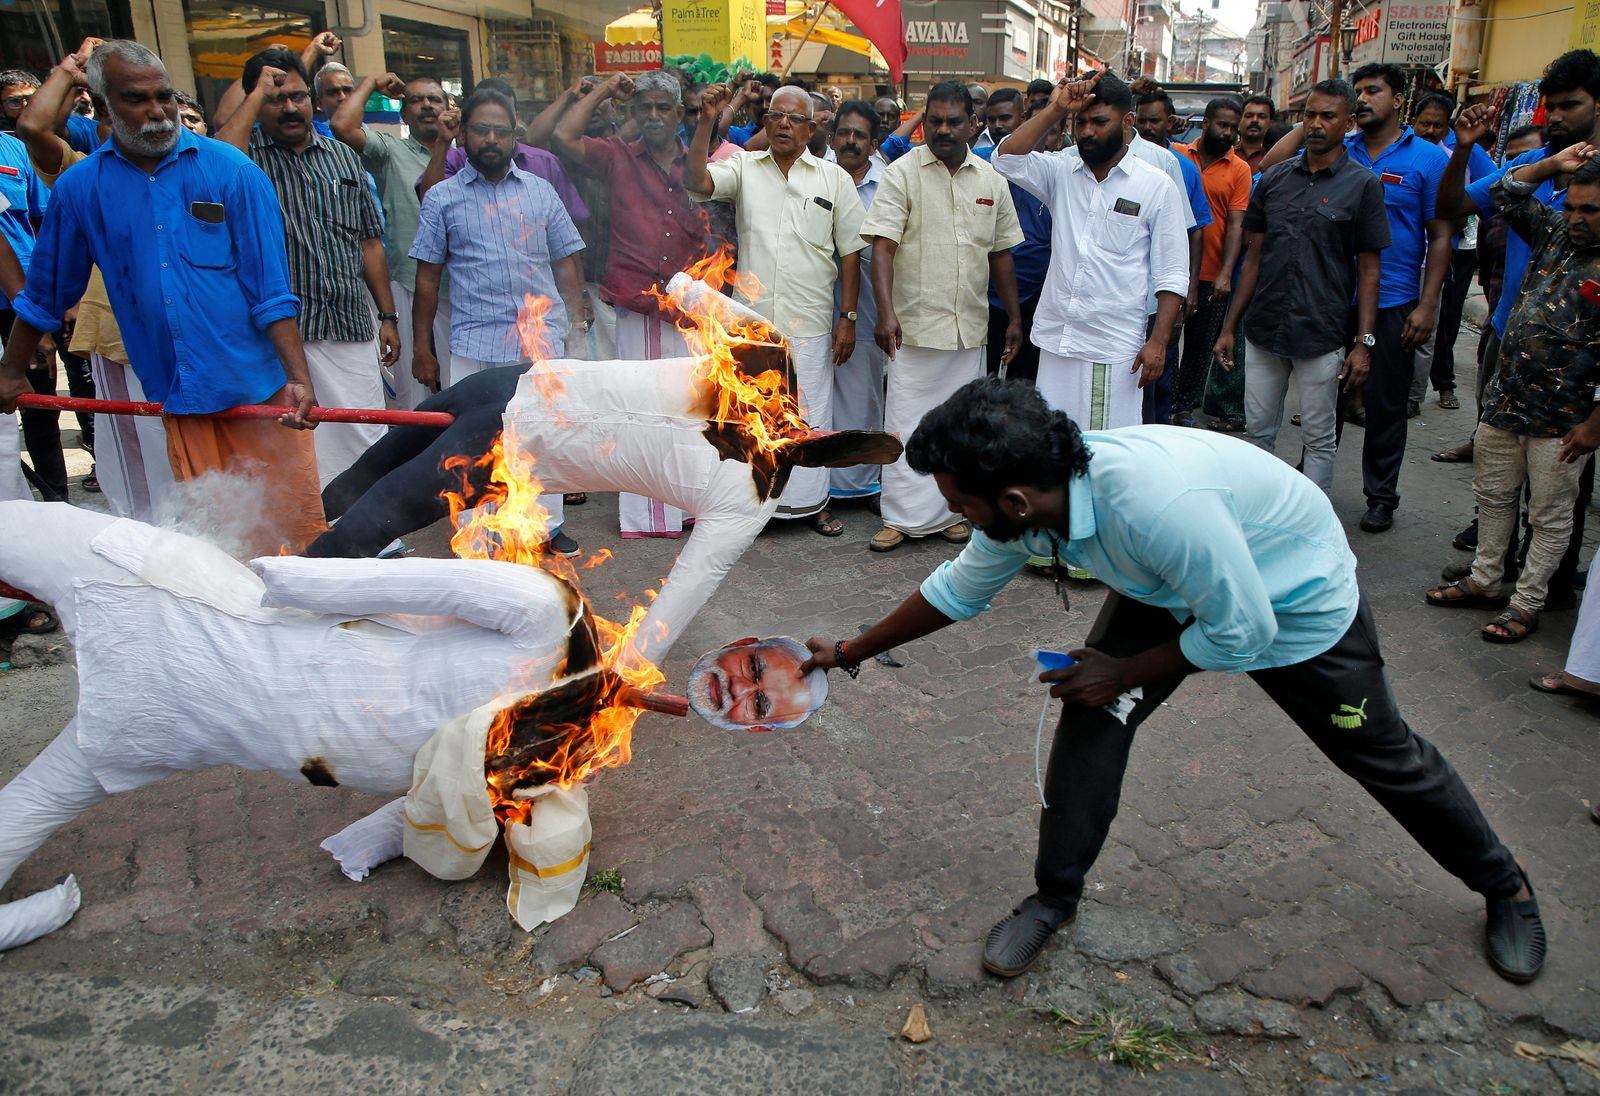 Supporters of Centre of India Trade Union burn effigies depicting U.S President Donald Trump and India's Prime Minister Narendra Modi during a protest against Trump's visit to India, in Kochi